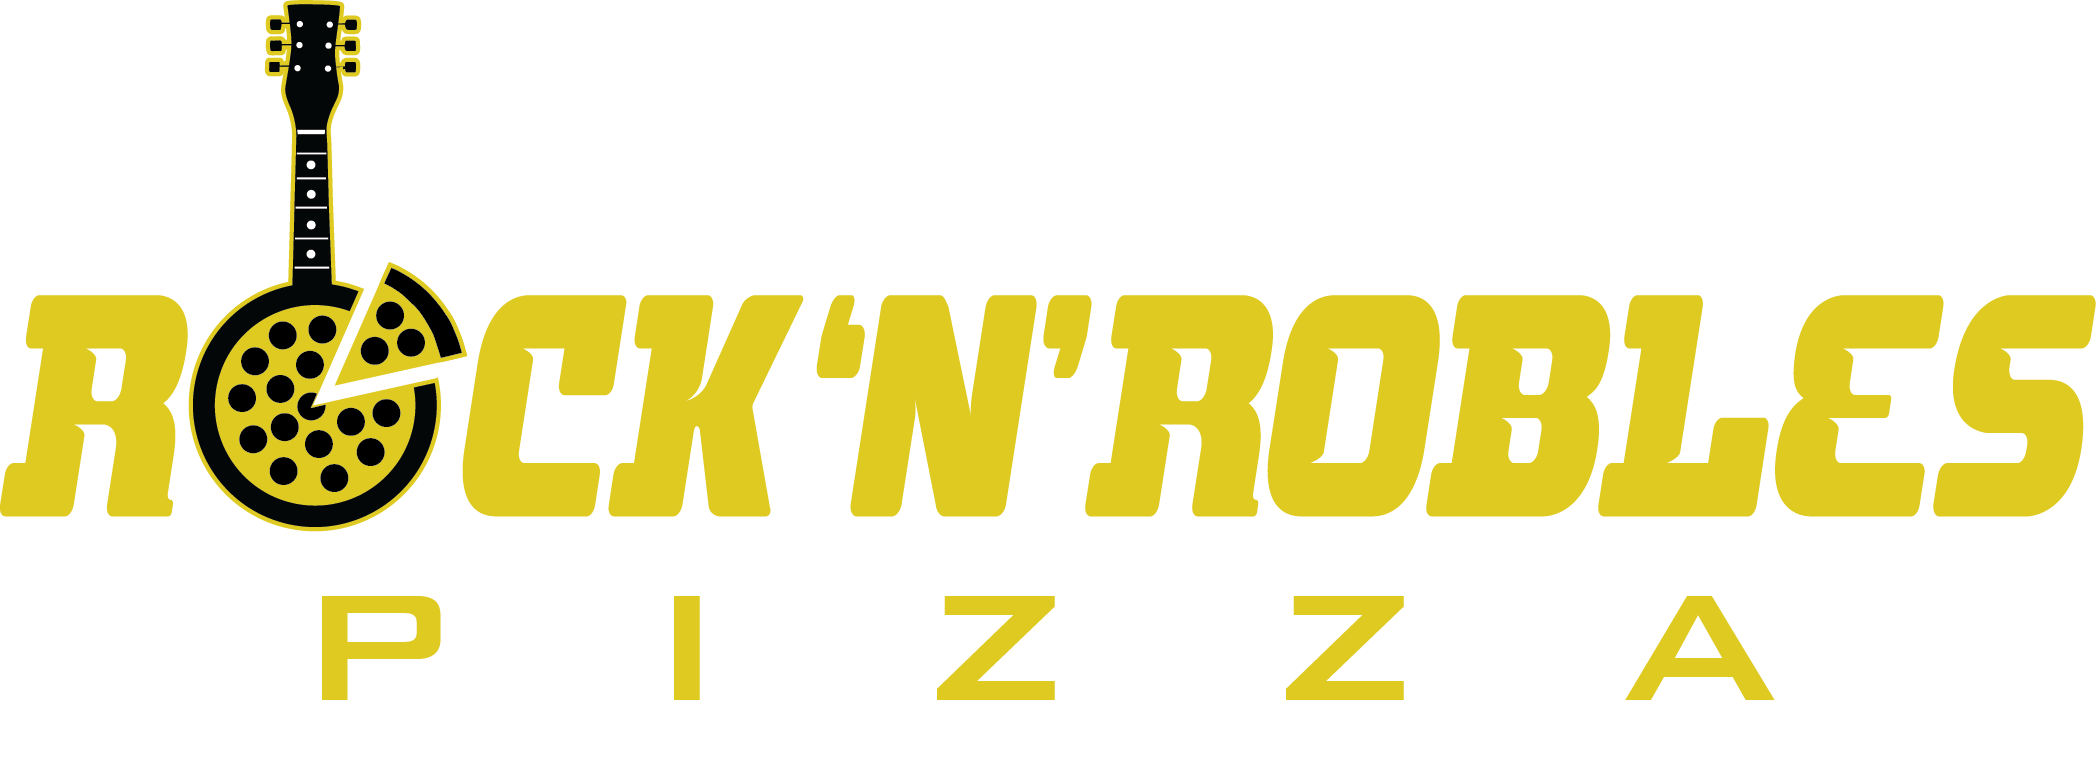 Rock'n'Robles pizza_guitar sign logo_yellow.png